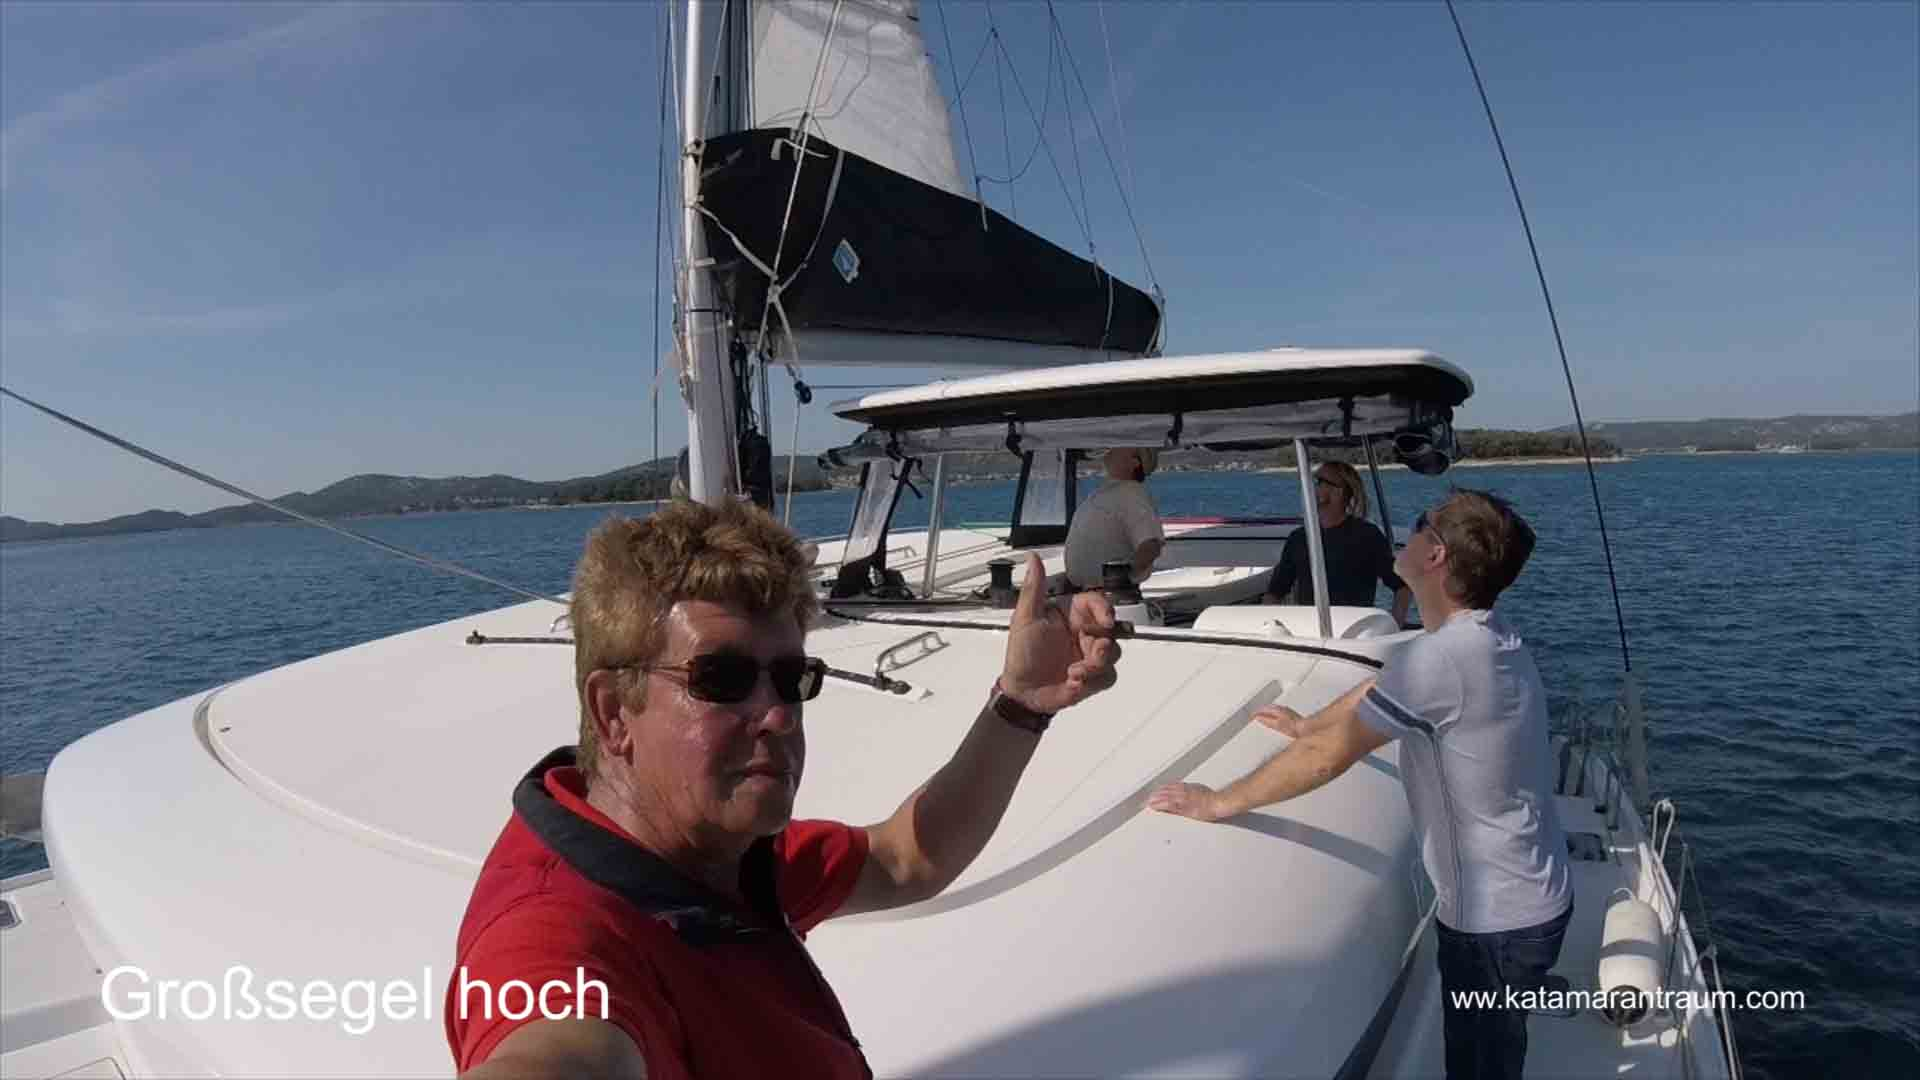 During the skipper training the catamaran training participants independently lift the sails